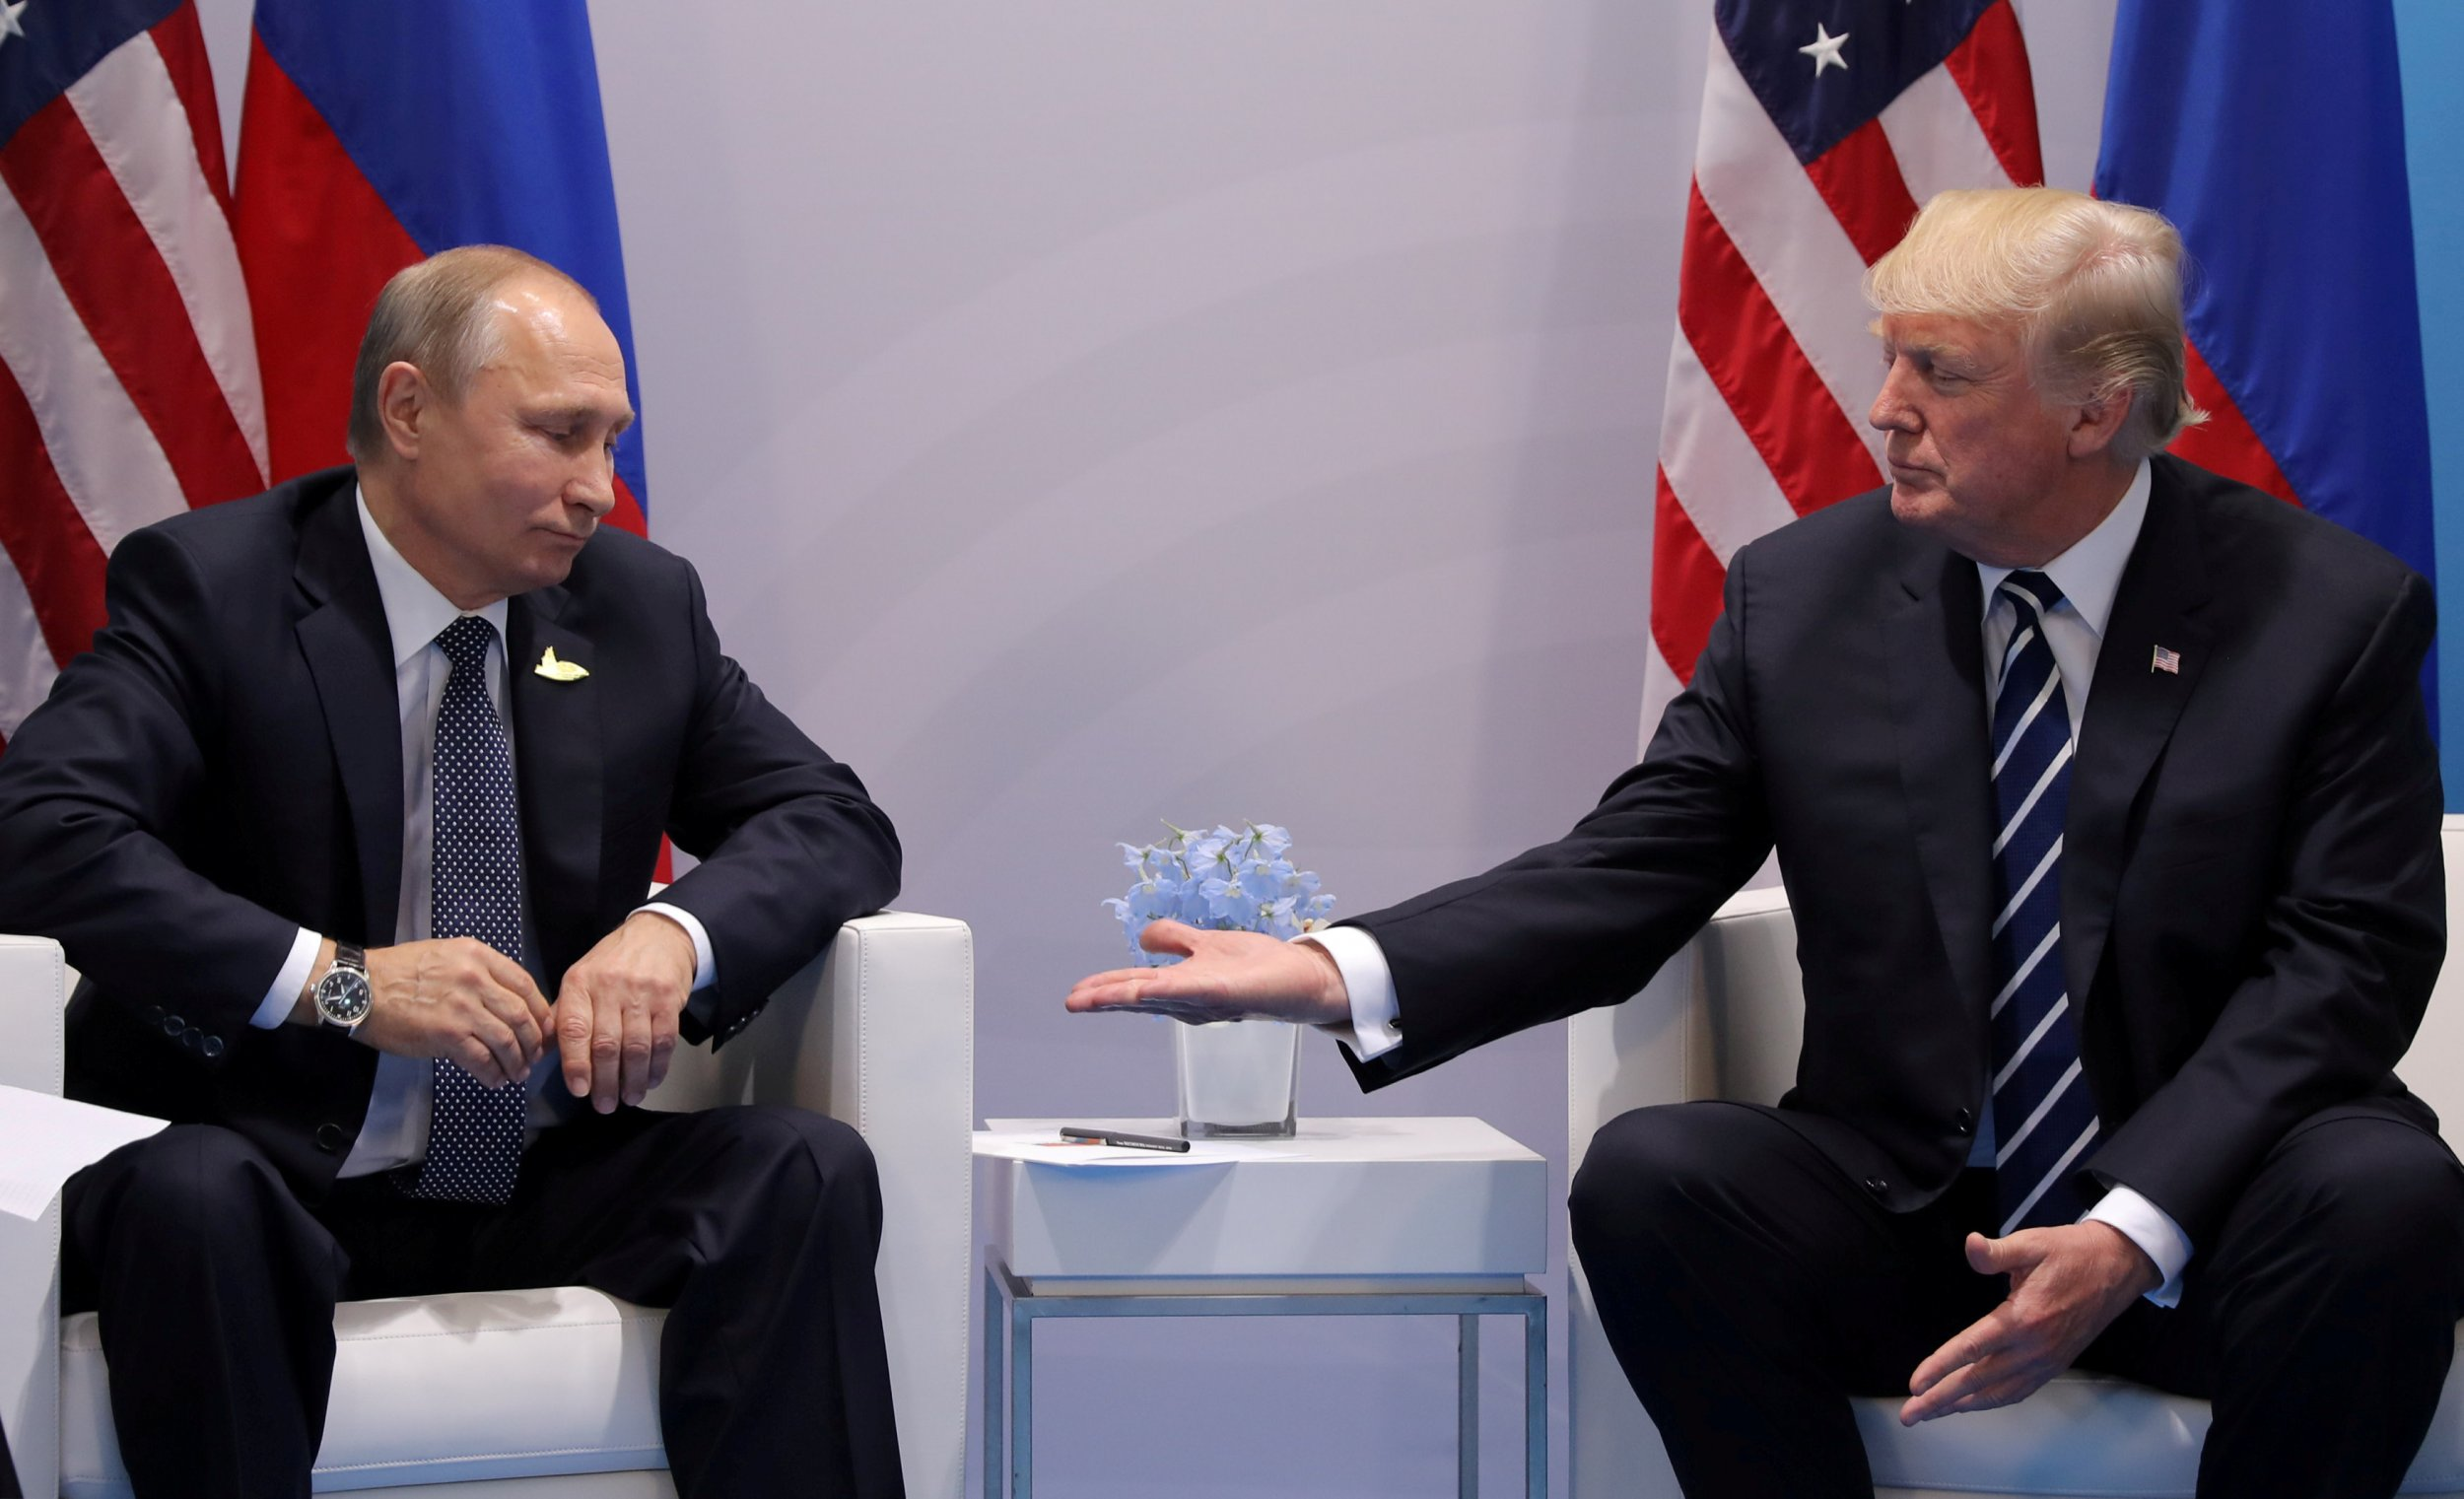 The U.S. and Russia grow closer as top generals and presidents speak